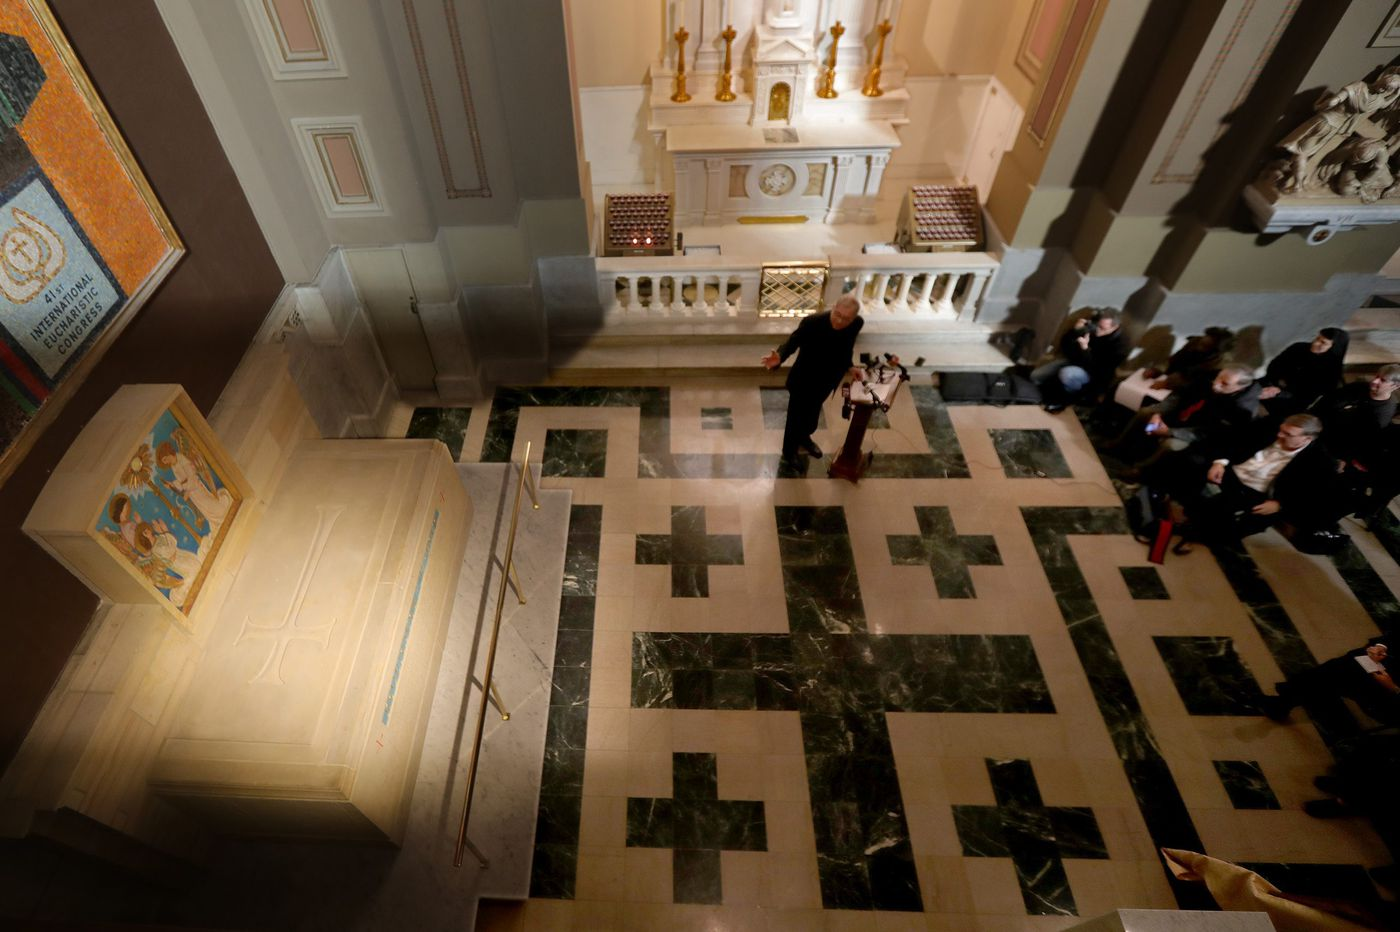 Moved from Bensalem, St. Katharine Drexel's tomb unveiled at Cathedral